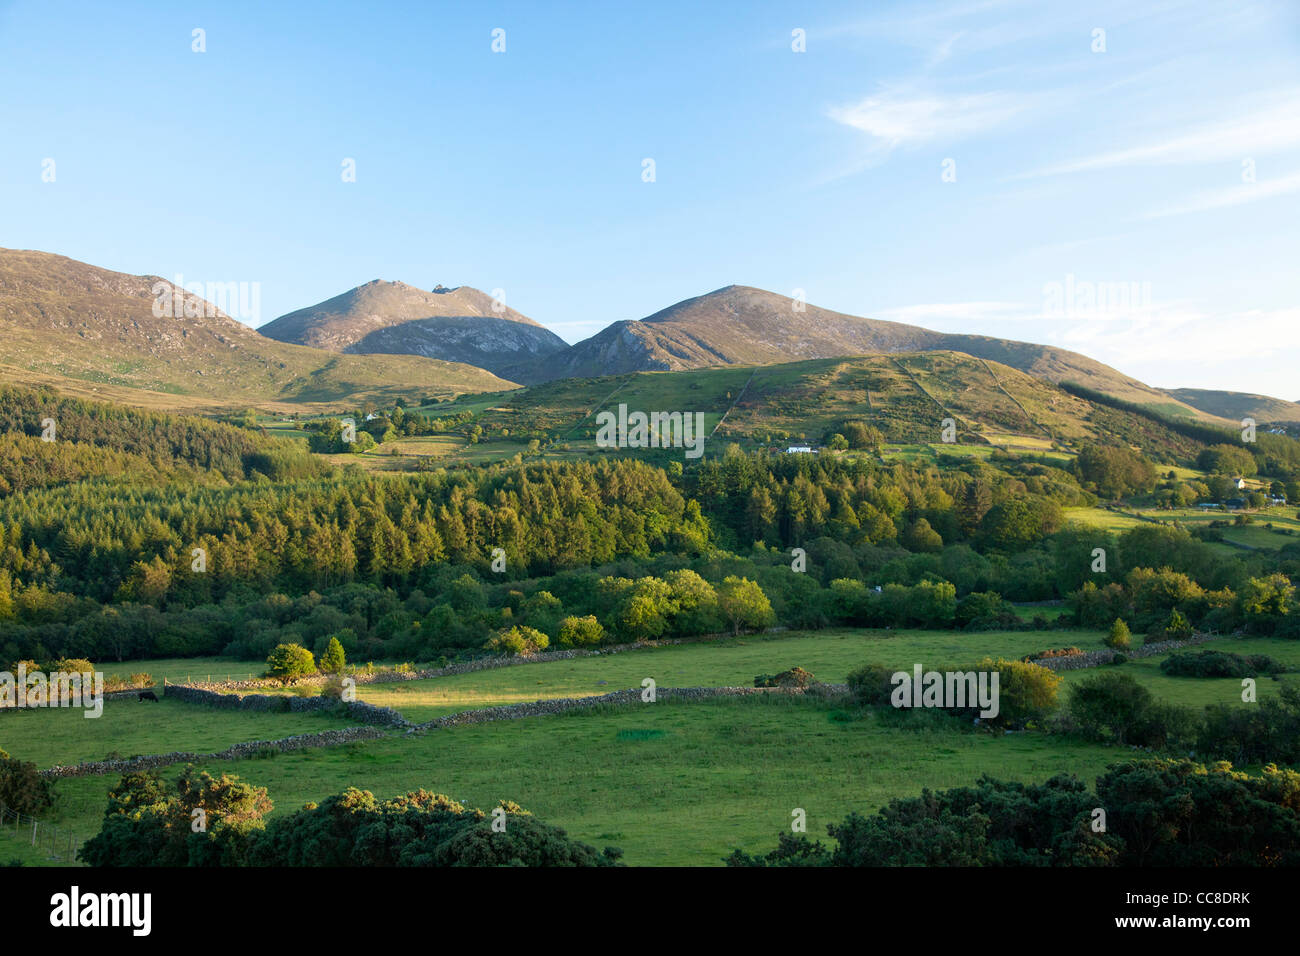 Farmland and forest beneath the Mourne Mountains, County Down, Northern Ireland. - Stock Image